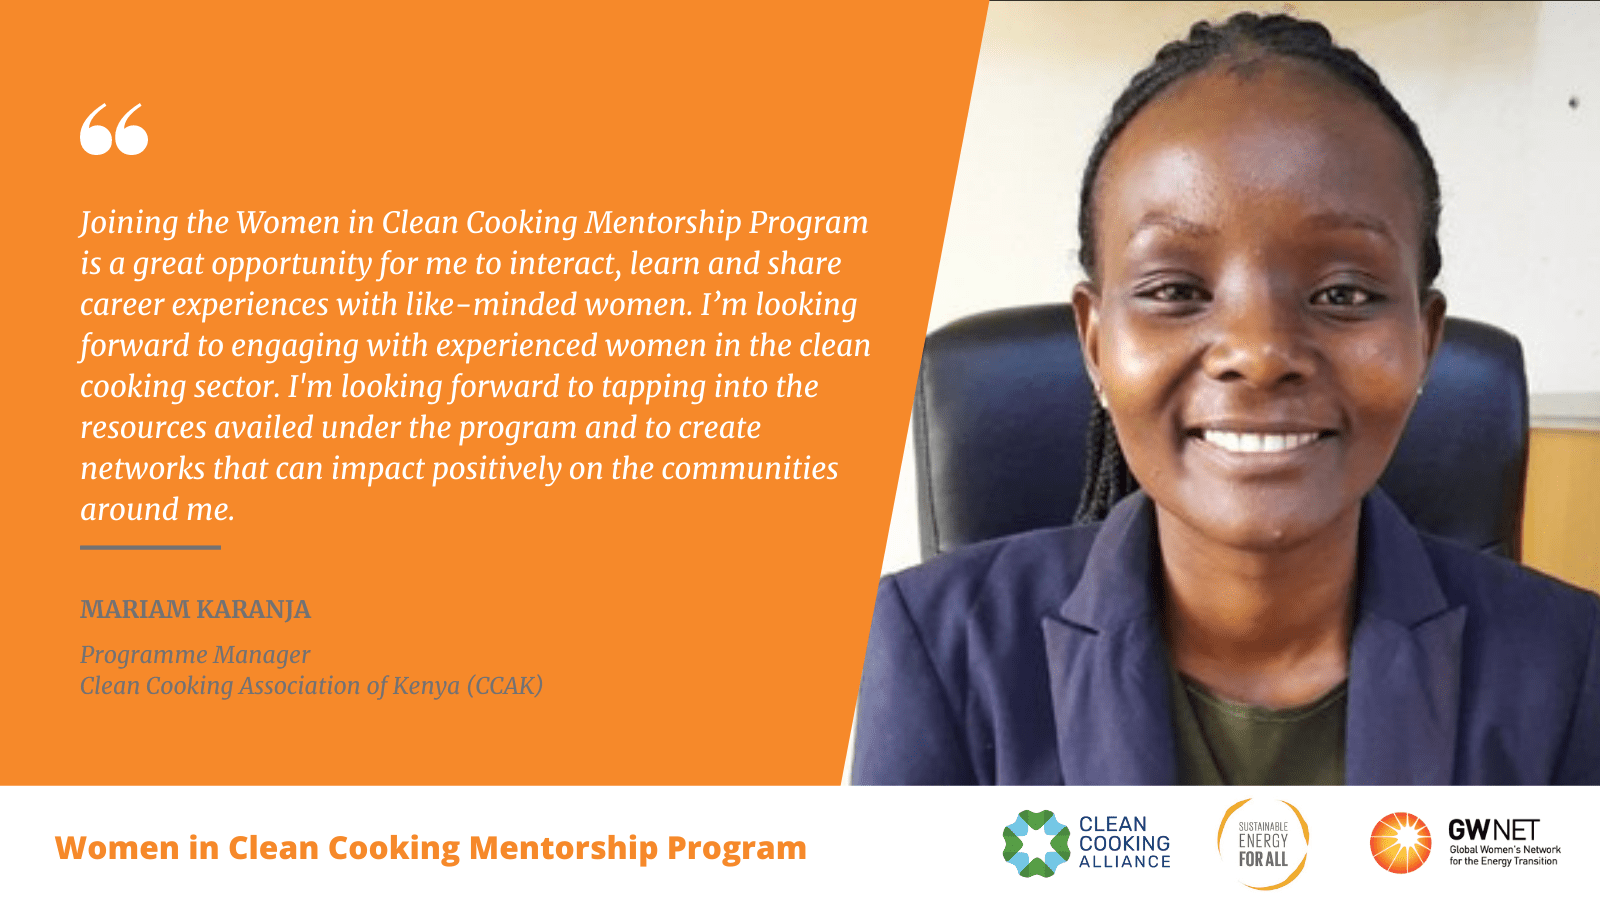 Mariam Karanja WICC Mentorship Program